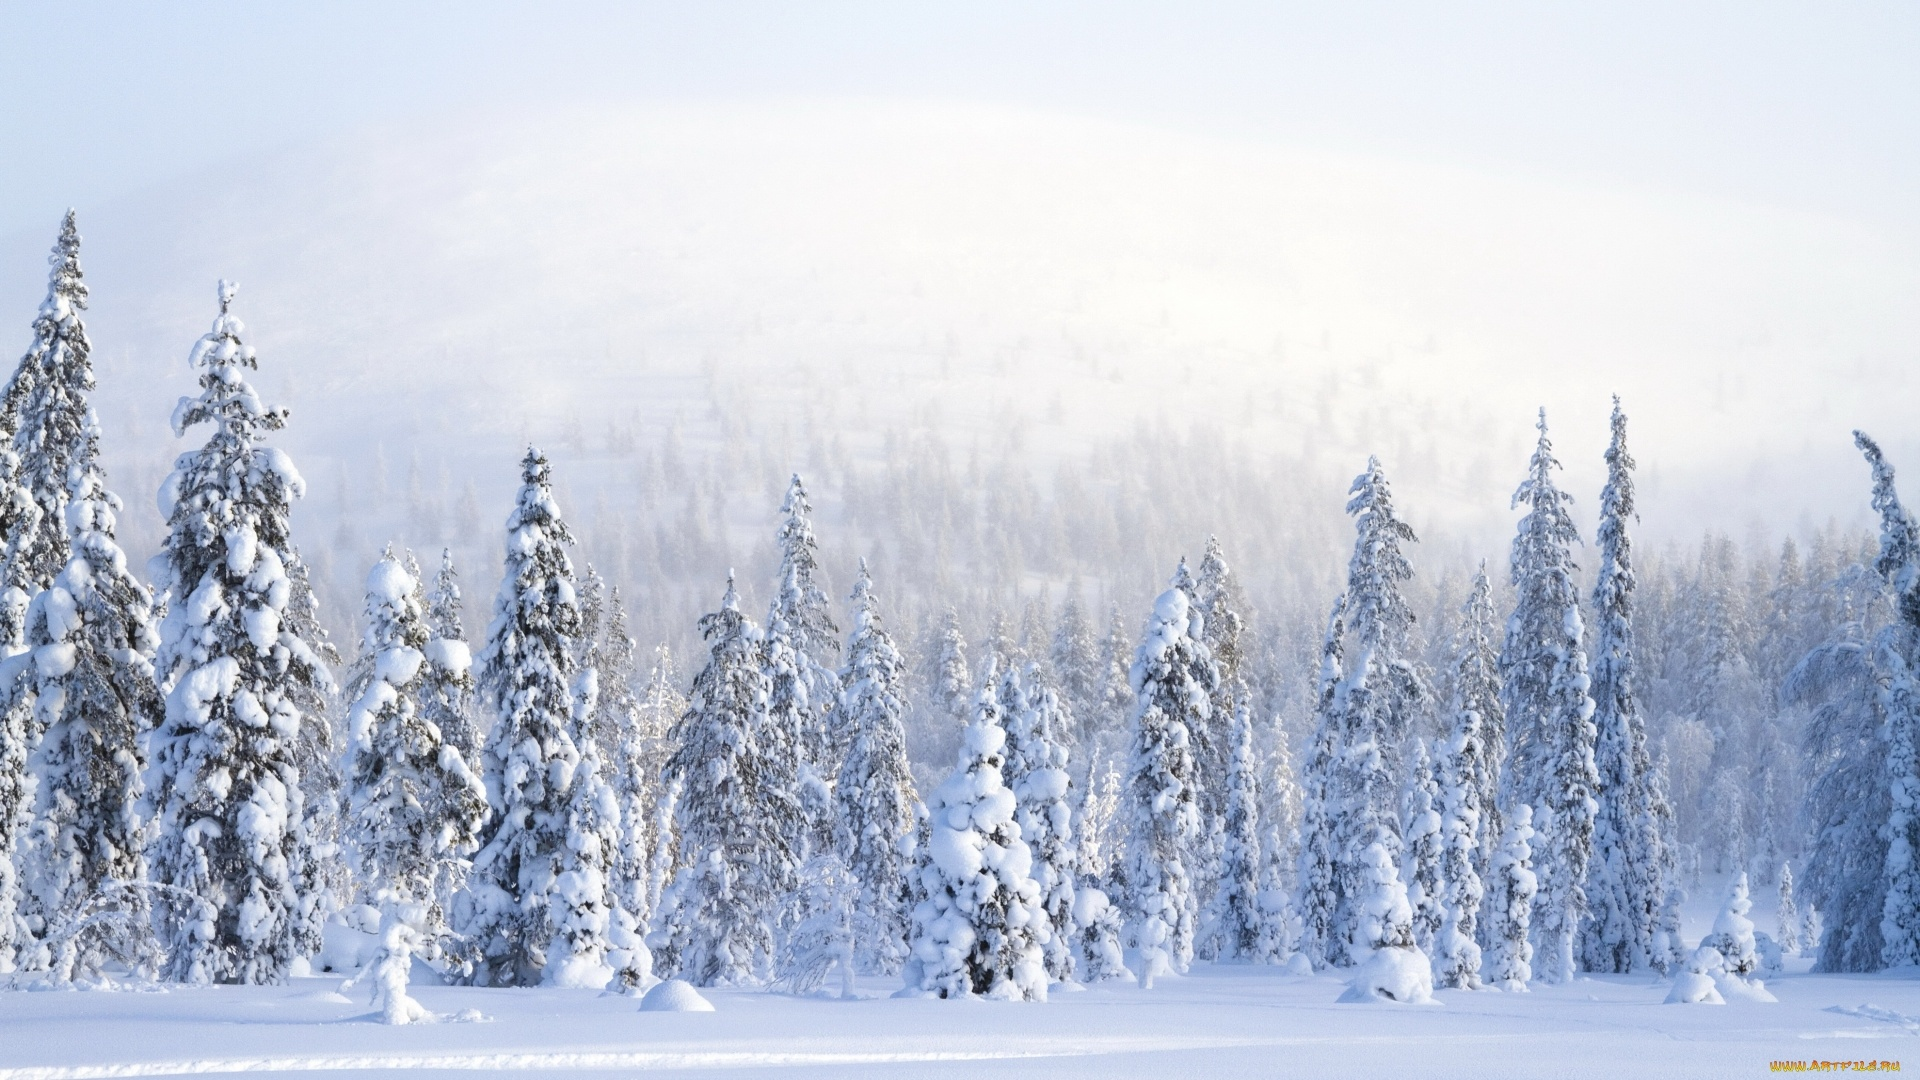 Snow Forest wallpaper for desktop